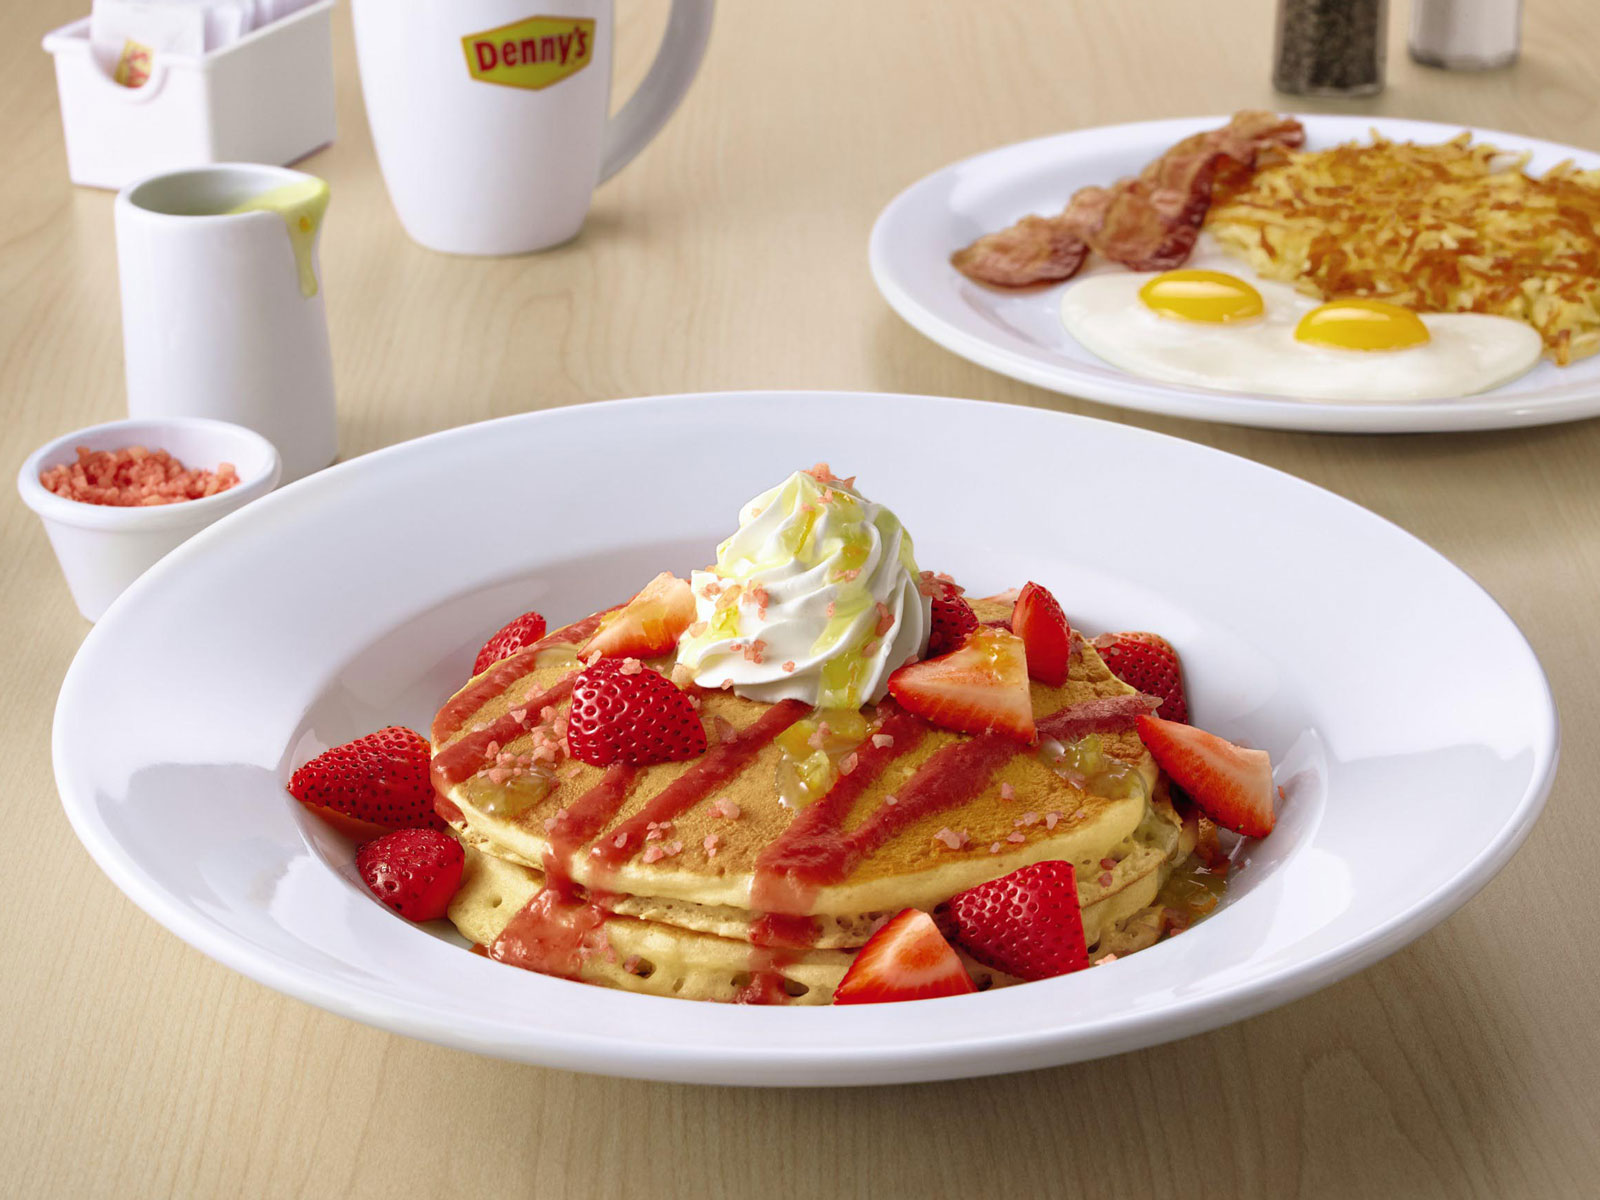 Denny's Reveals Its Han Solo-Themed Menu for the 'Star Wars' Spinoff